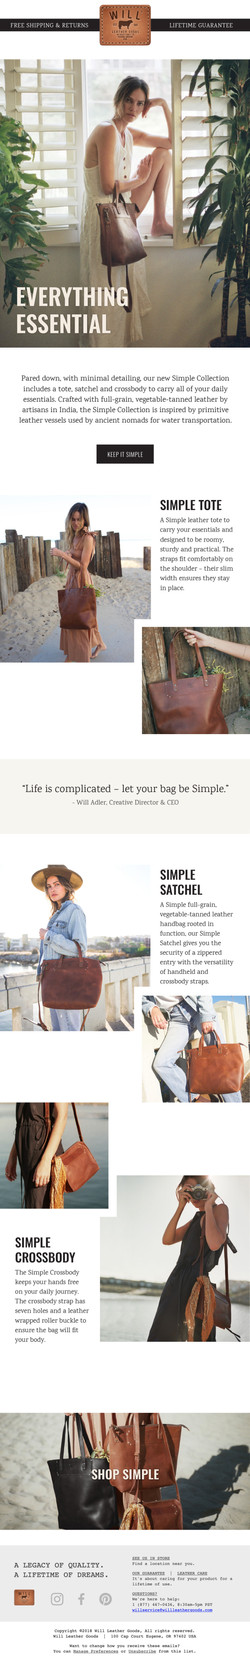 Simple Collection Launch Email